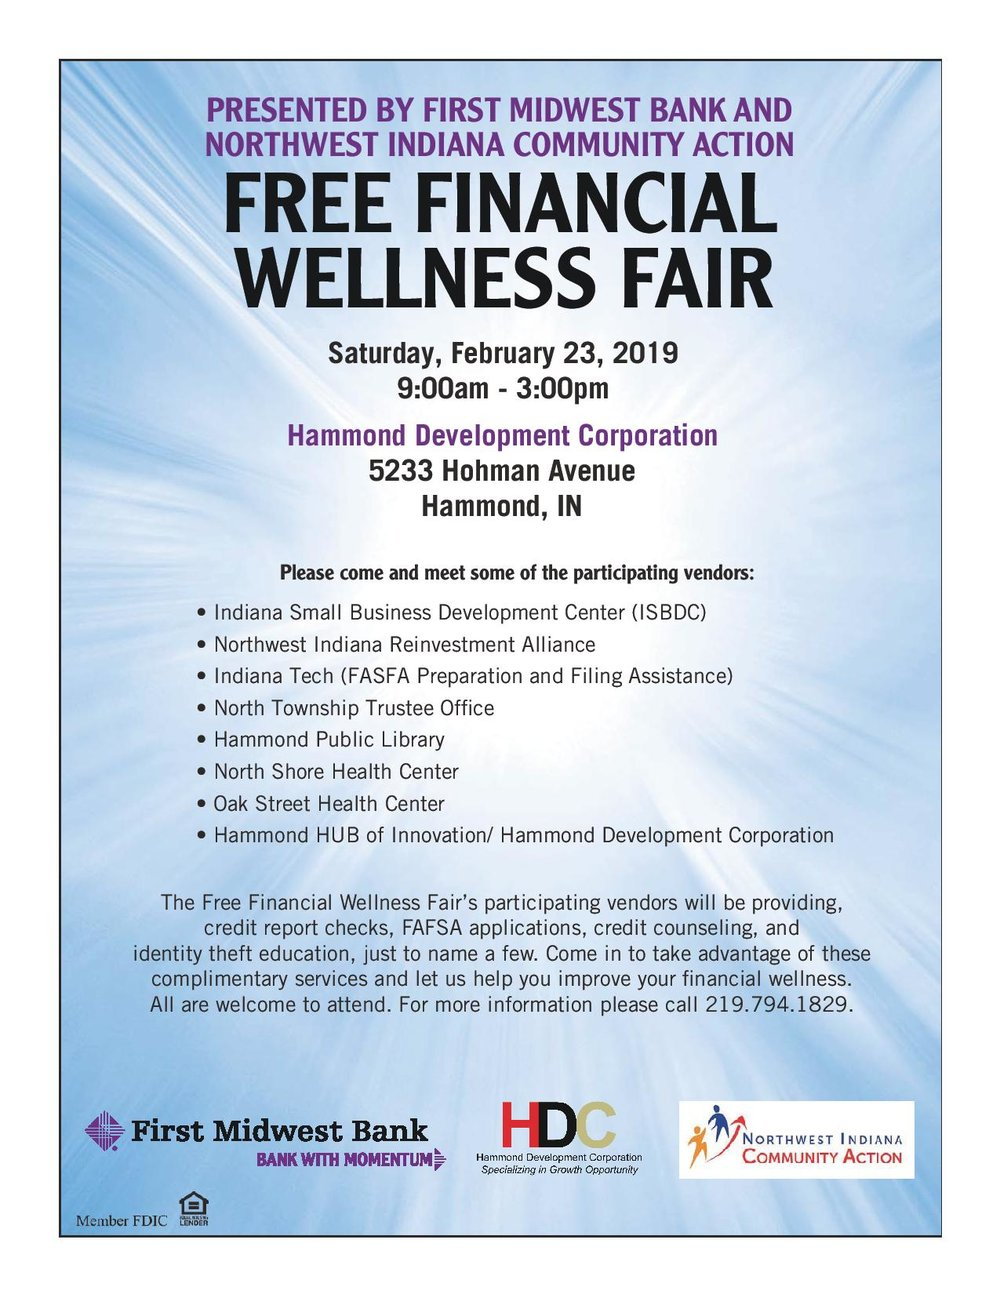 NWICA_Financial Wellness Fair Flyer_02.23.19_revised-011419 (1)-page-001.jpg